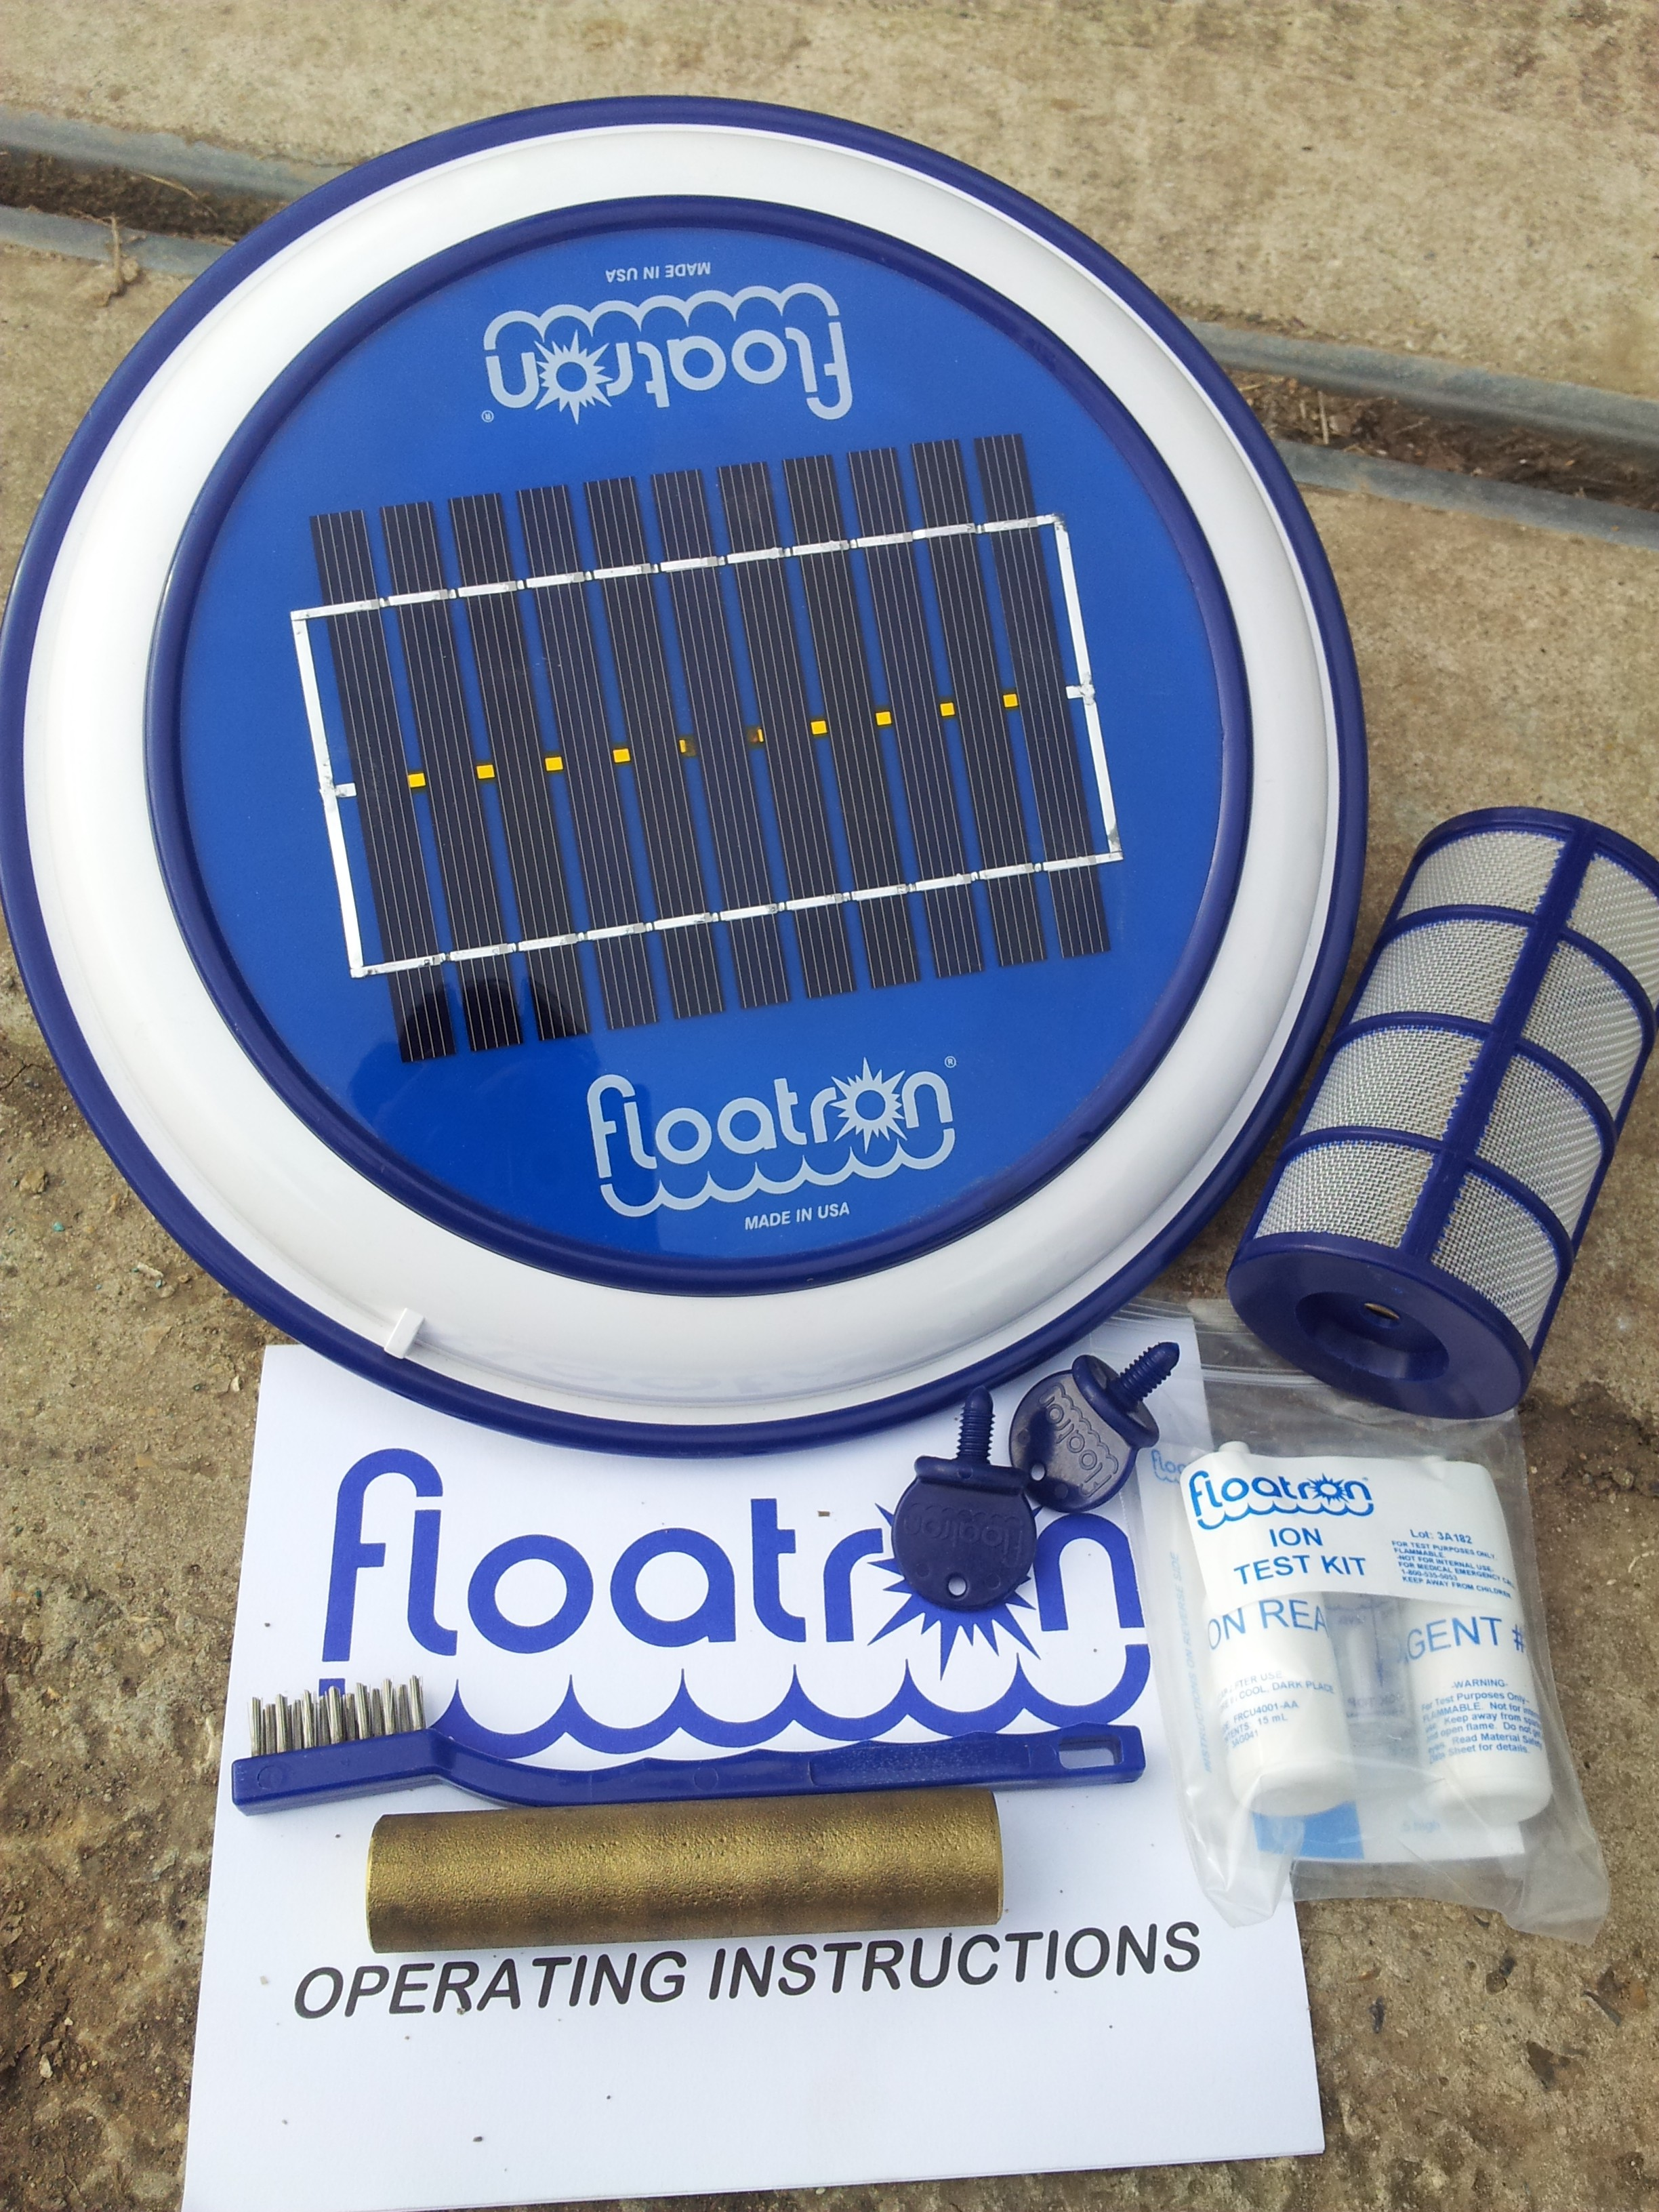 Get your floatron and your pool ready for a busy summer